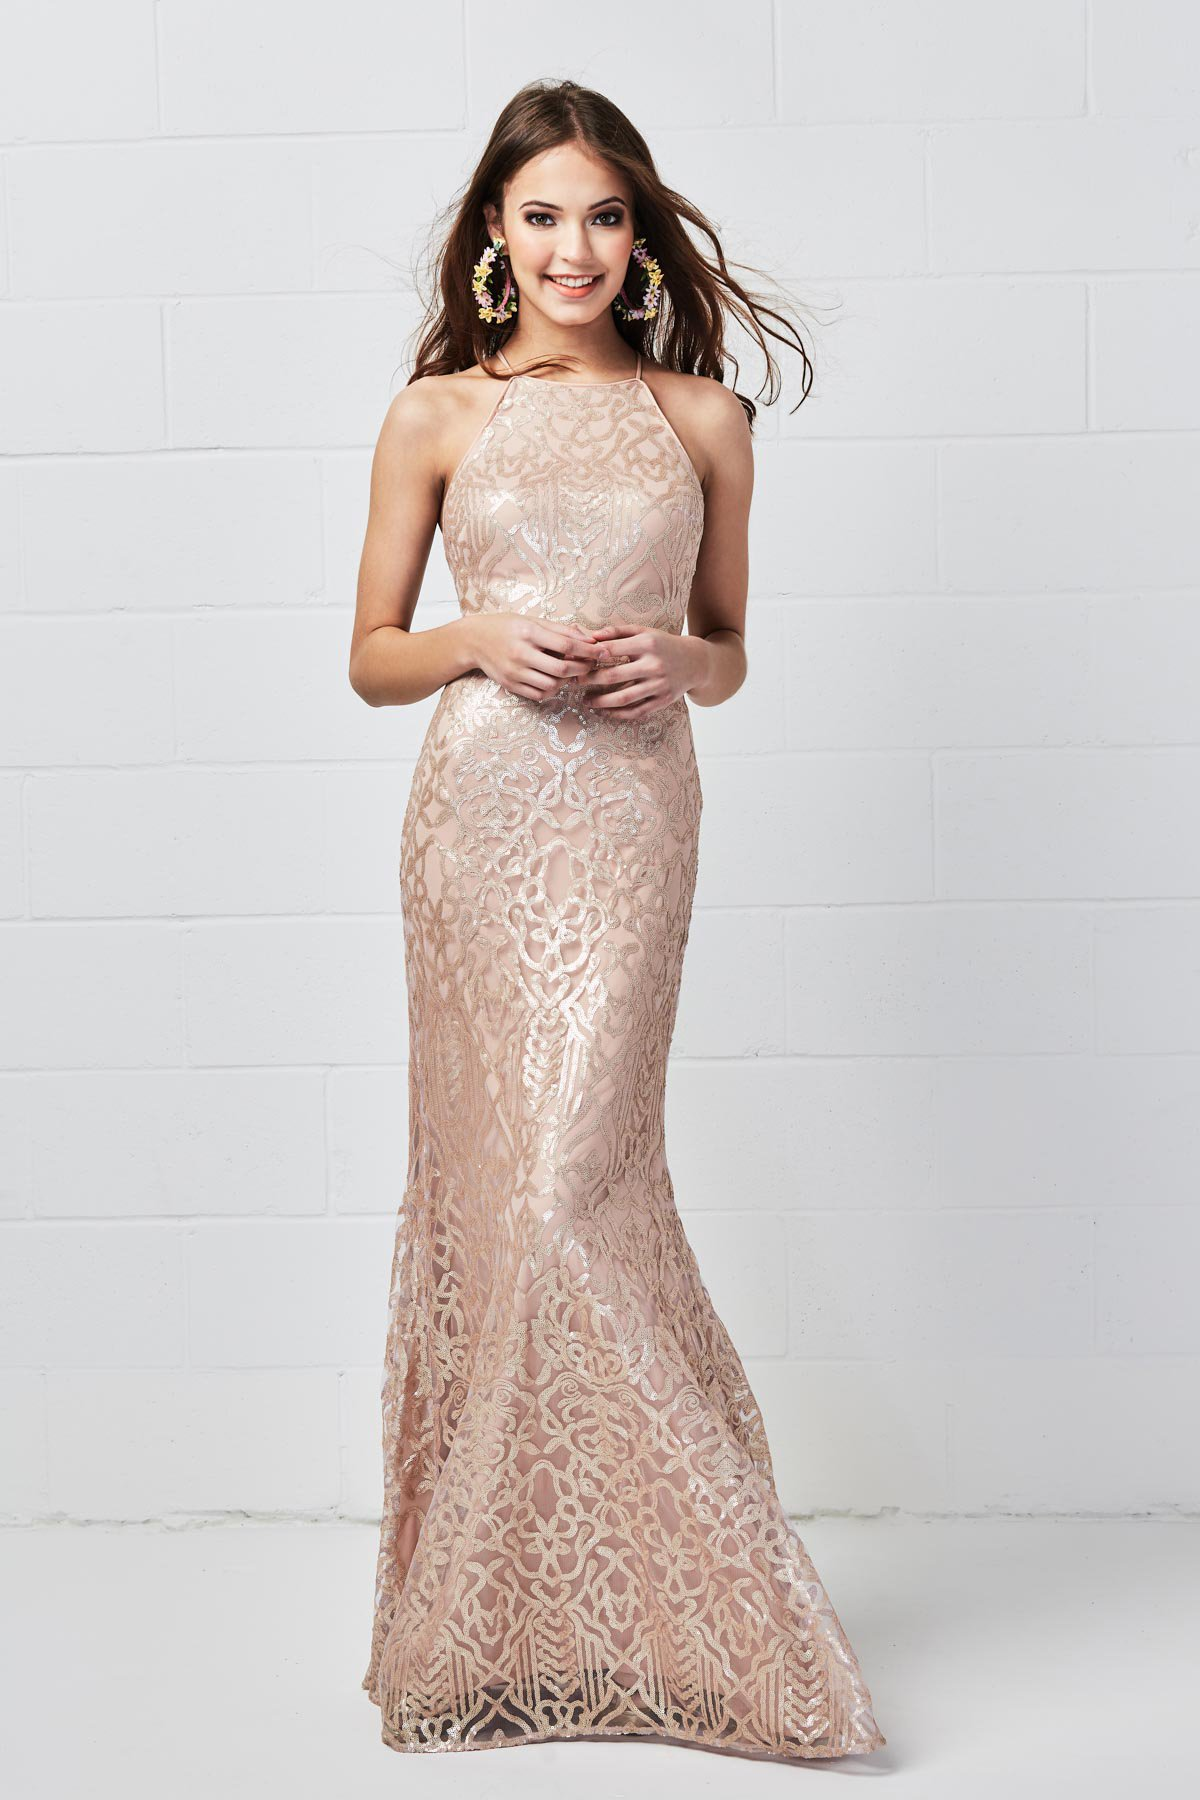 Halter style dress by Wtoo by Watters Bridesmaids in Talisa Sequin